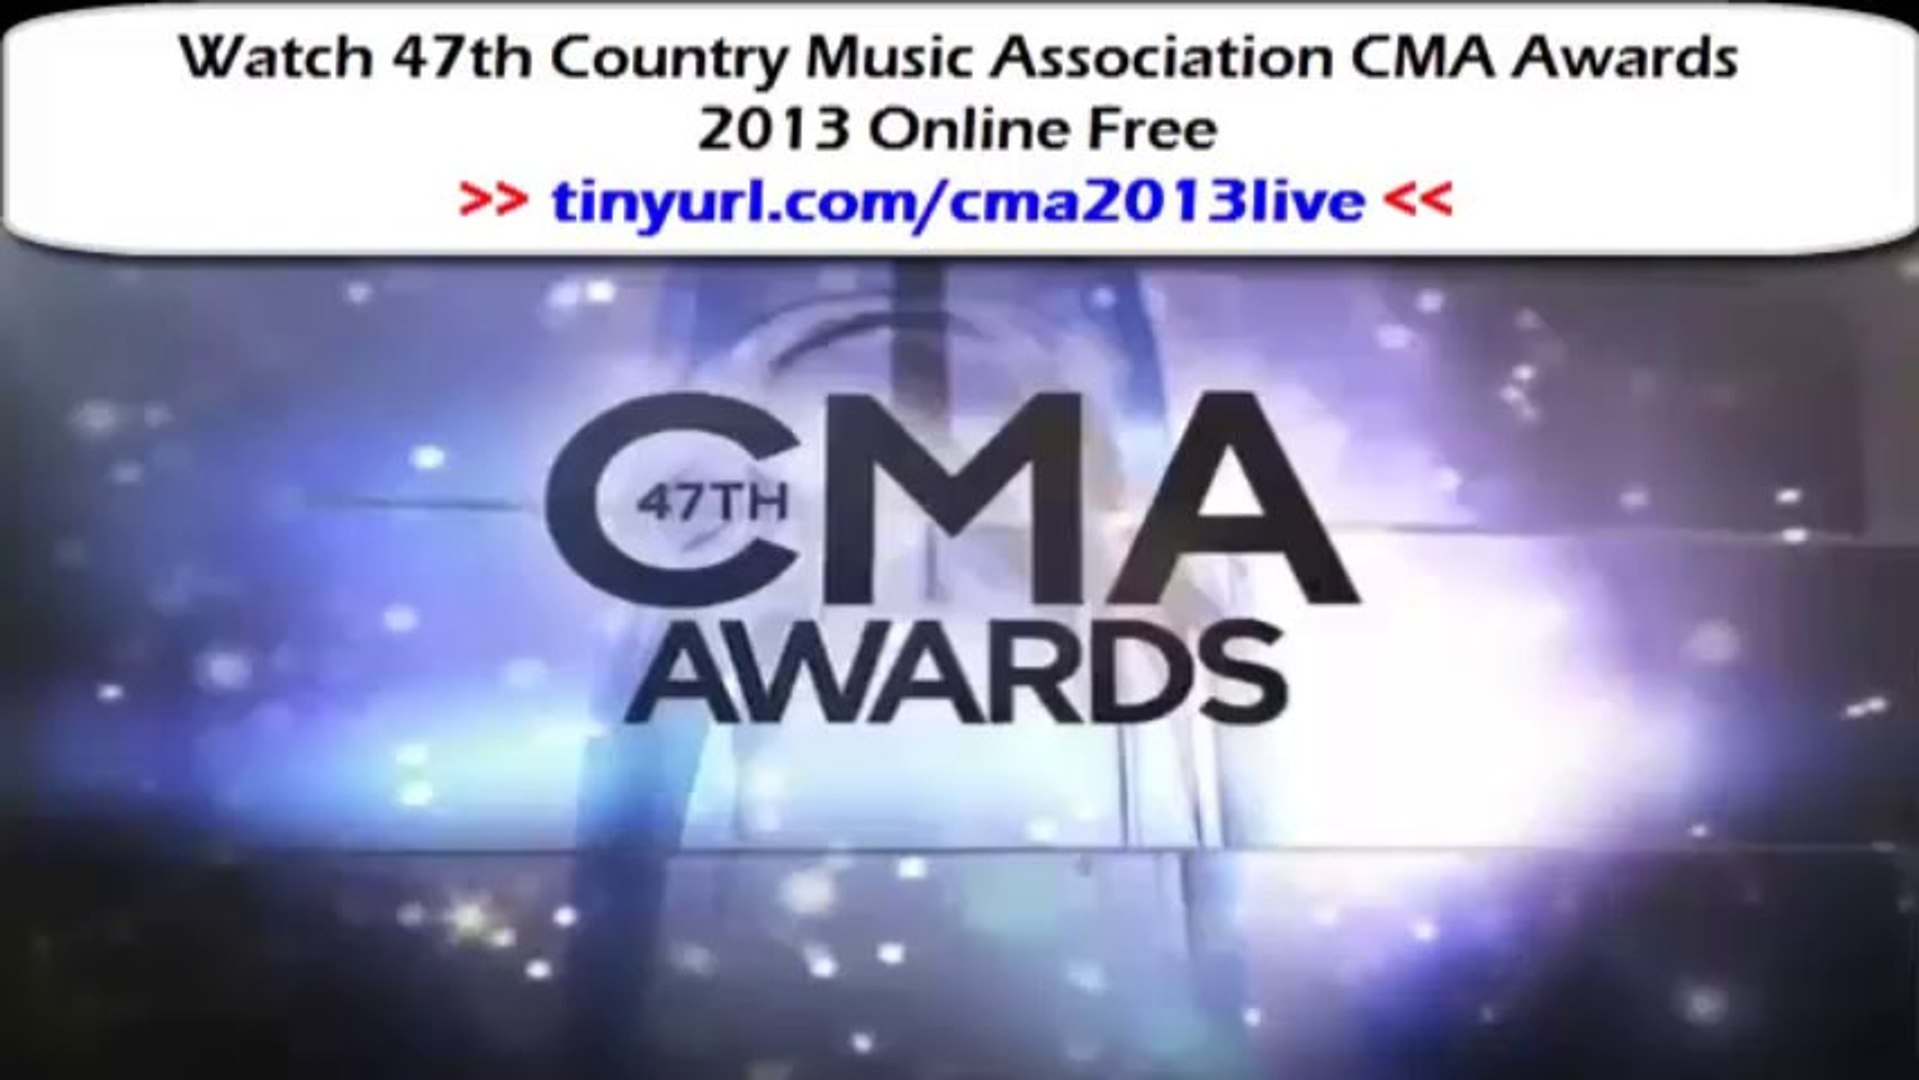 Watch LIVE  47th Country Music Association CMA Awards 2013  2013 Online 2013 Free!